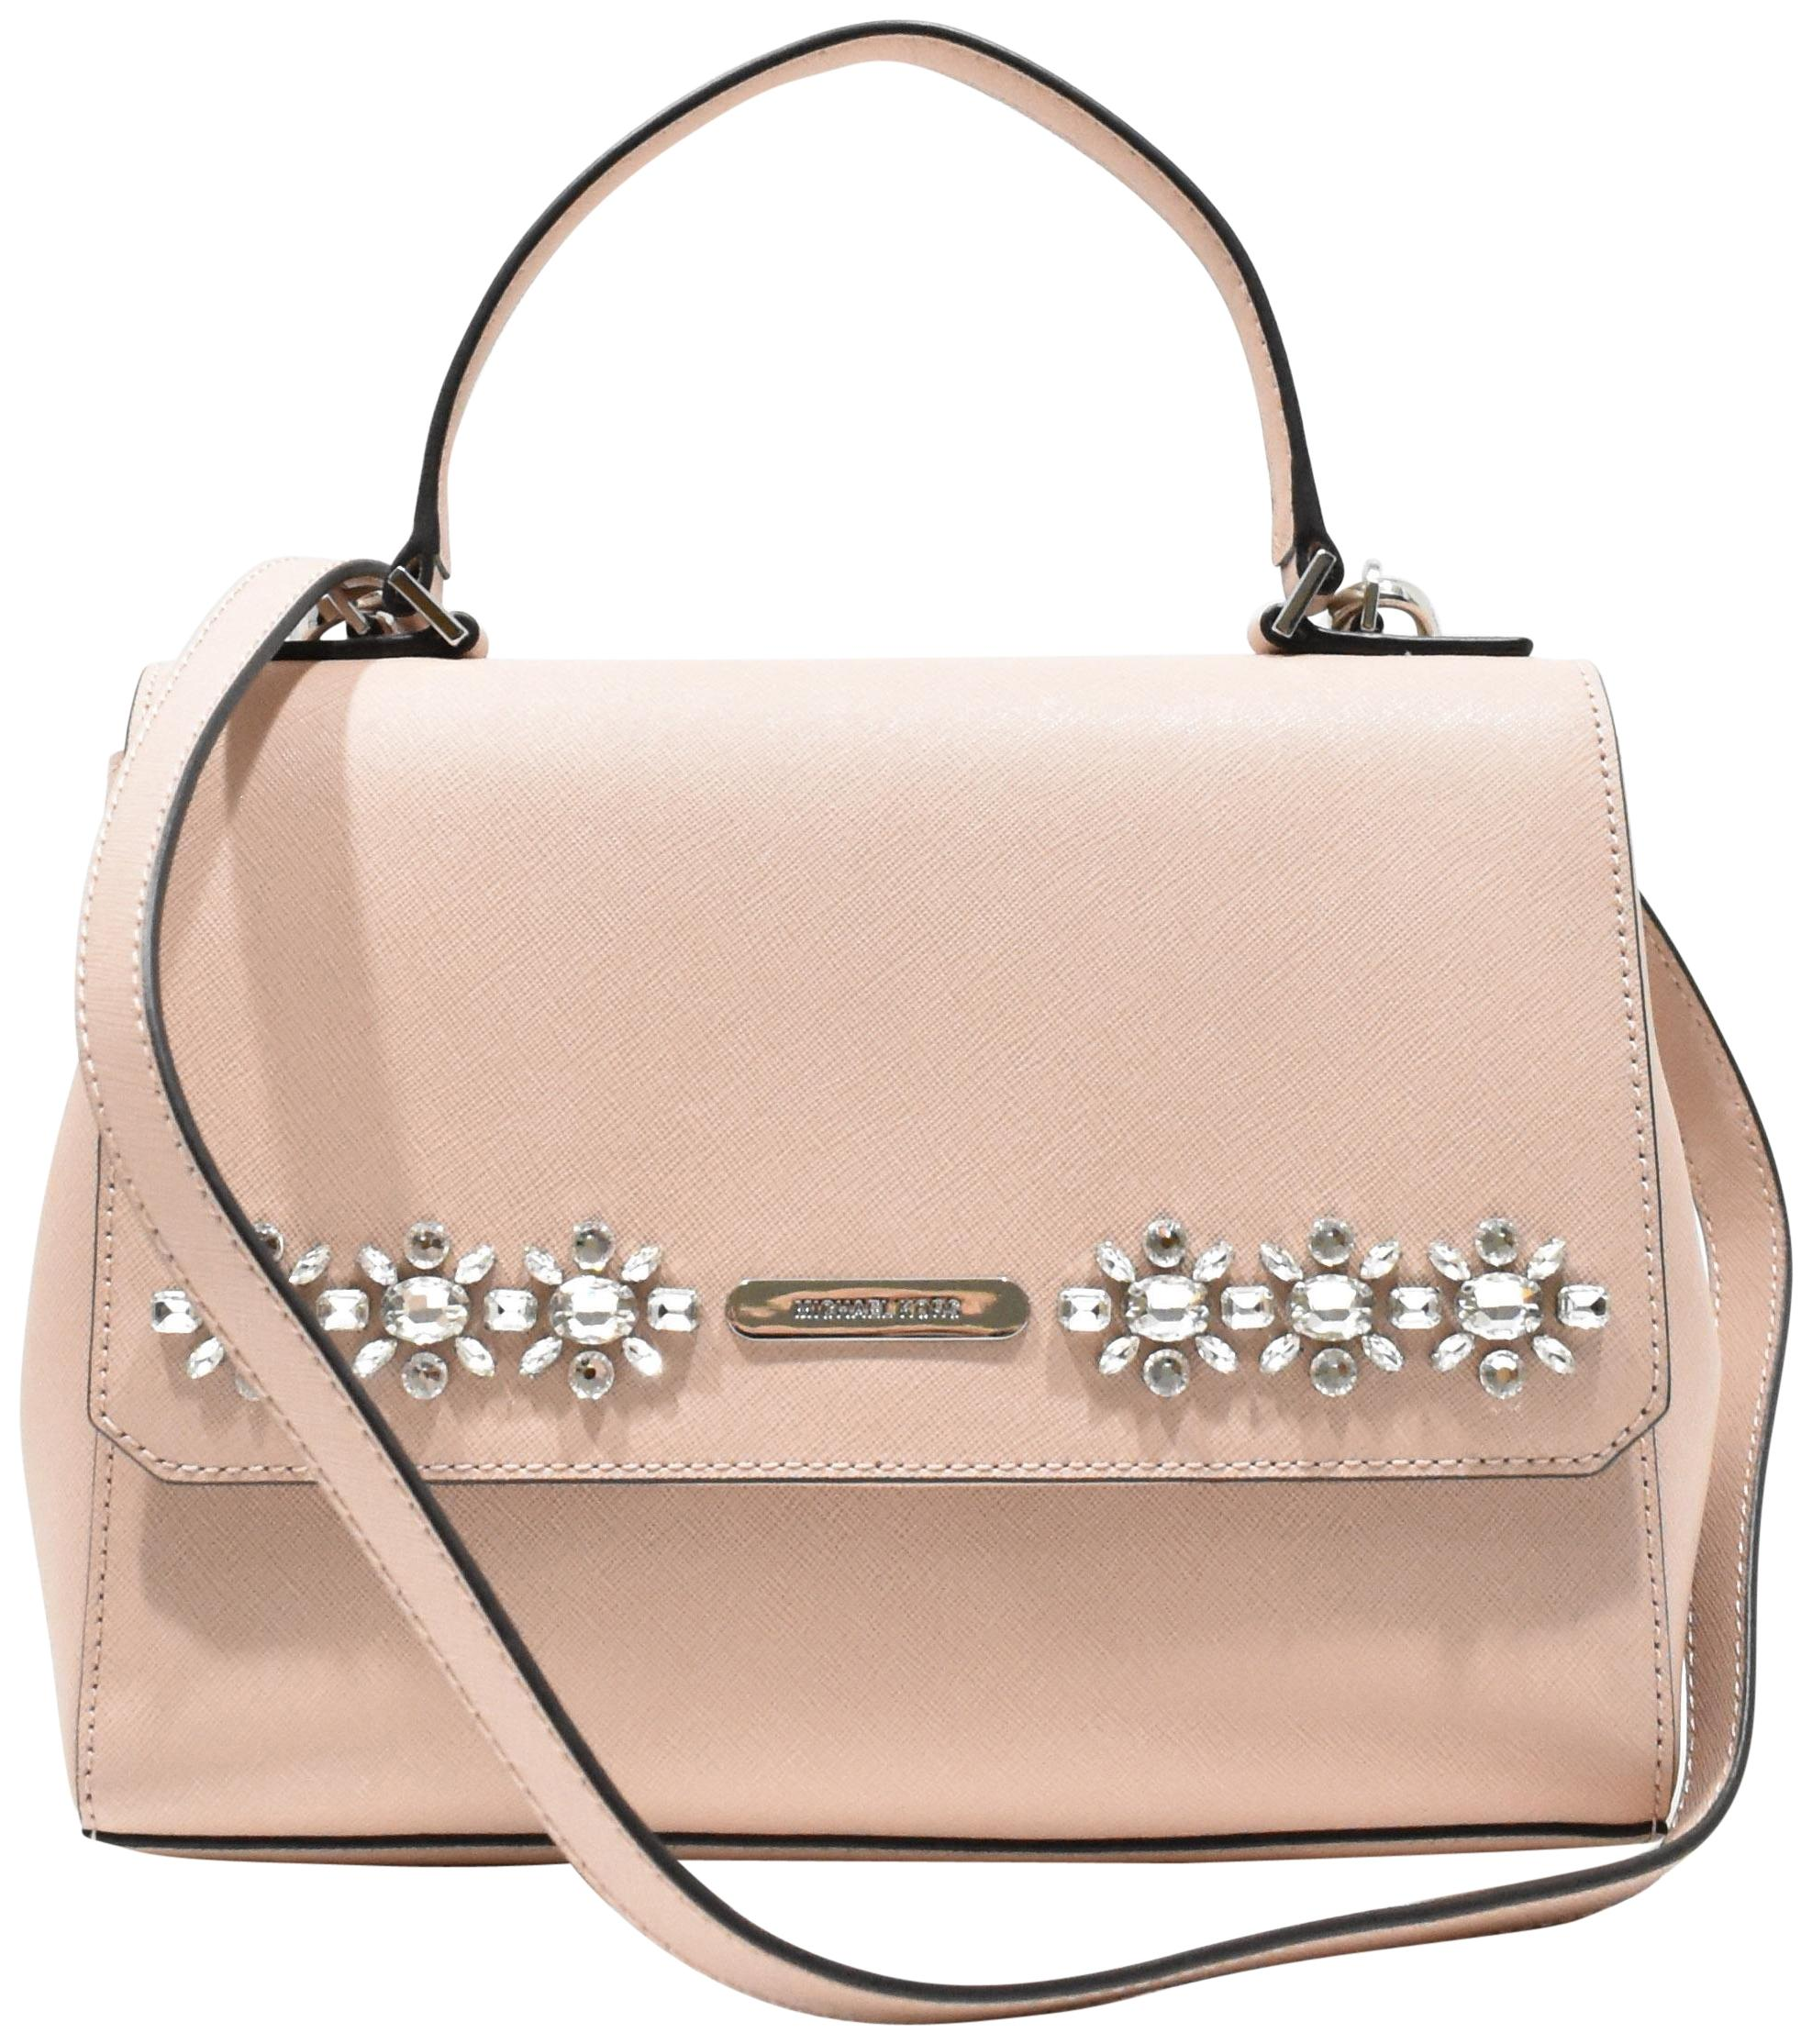 a5afc27ac682 ... discount code for michael kors cross body bag bfa45 03f0d